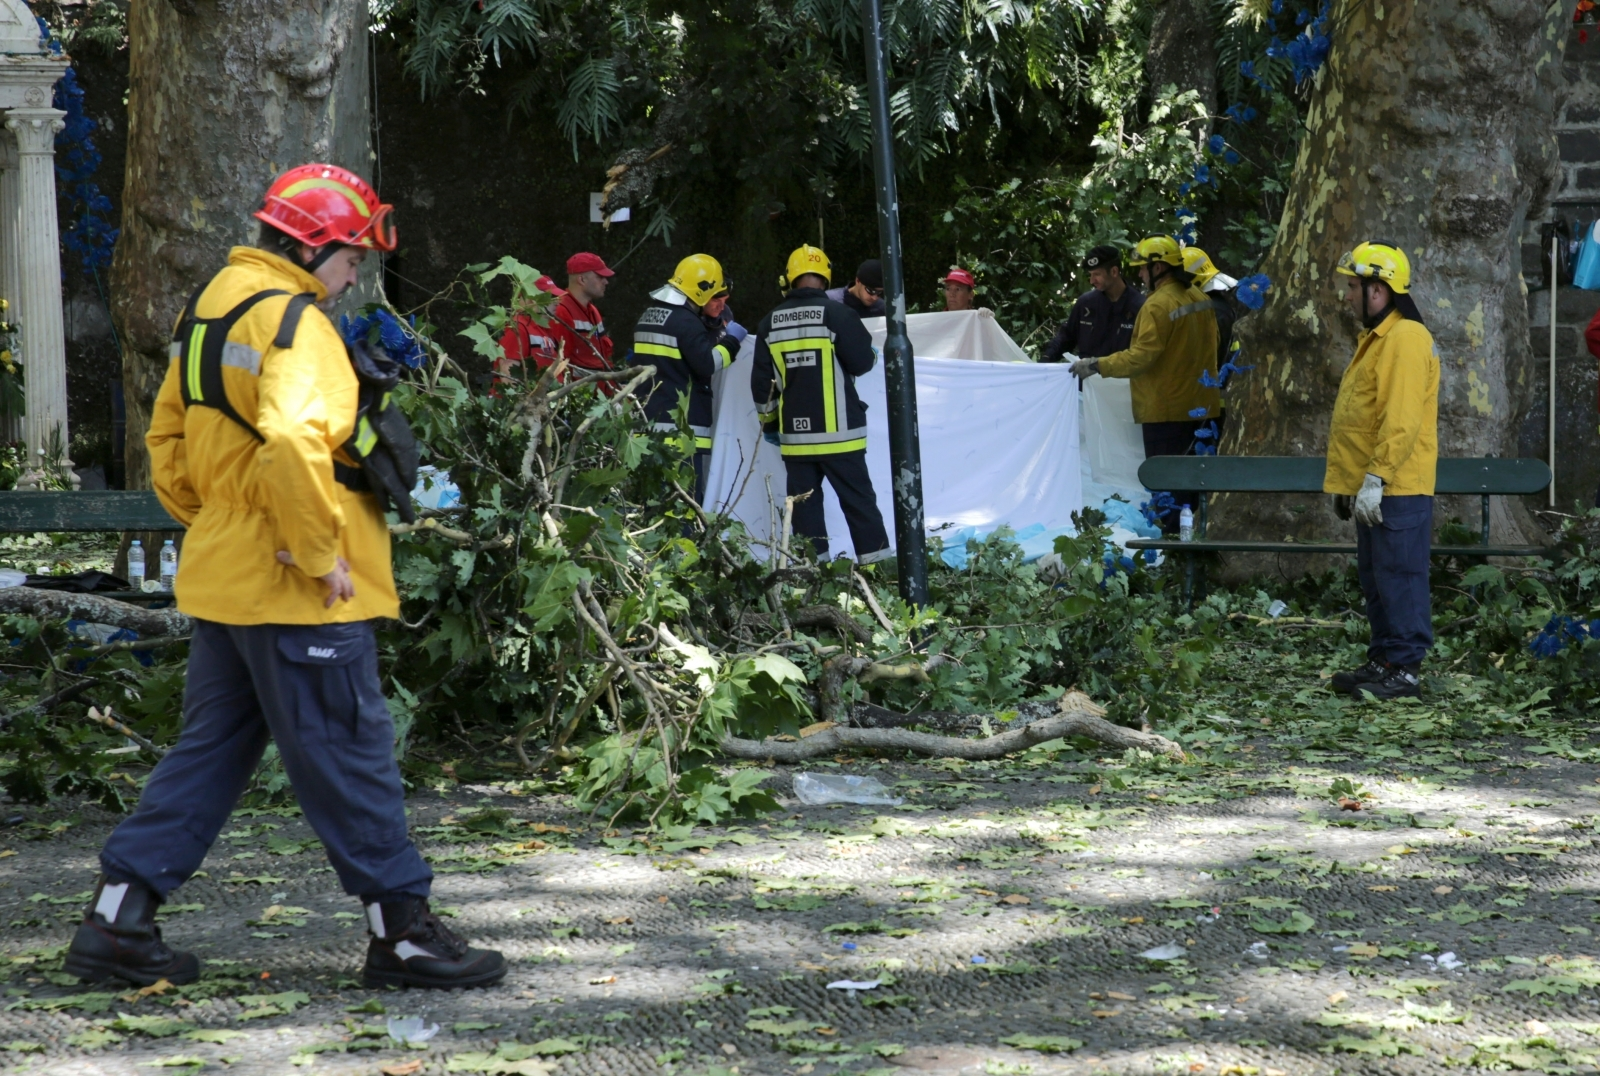 Deadly tree fall at religious event in Portugal — Madeira